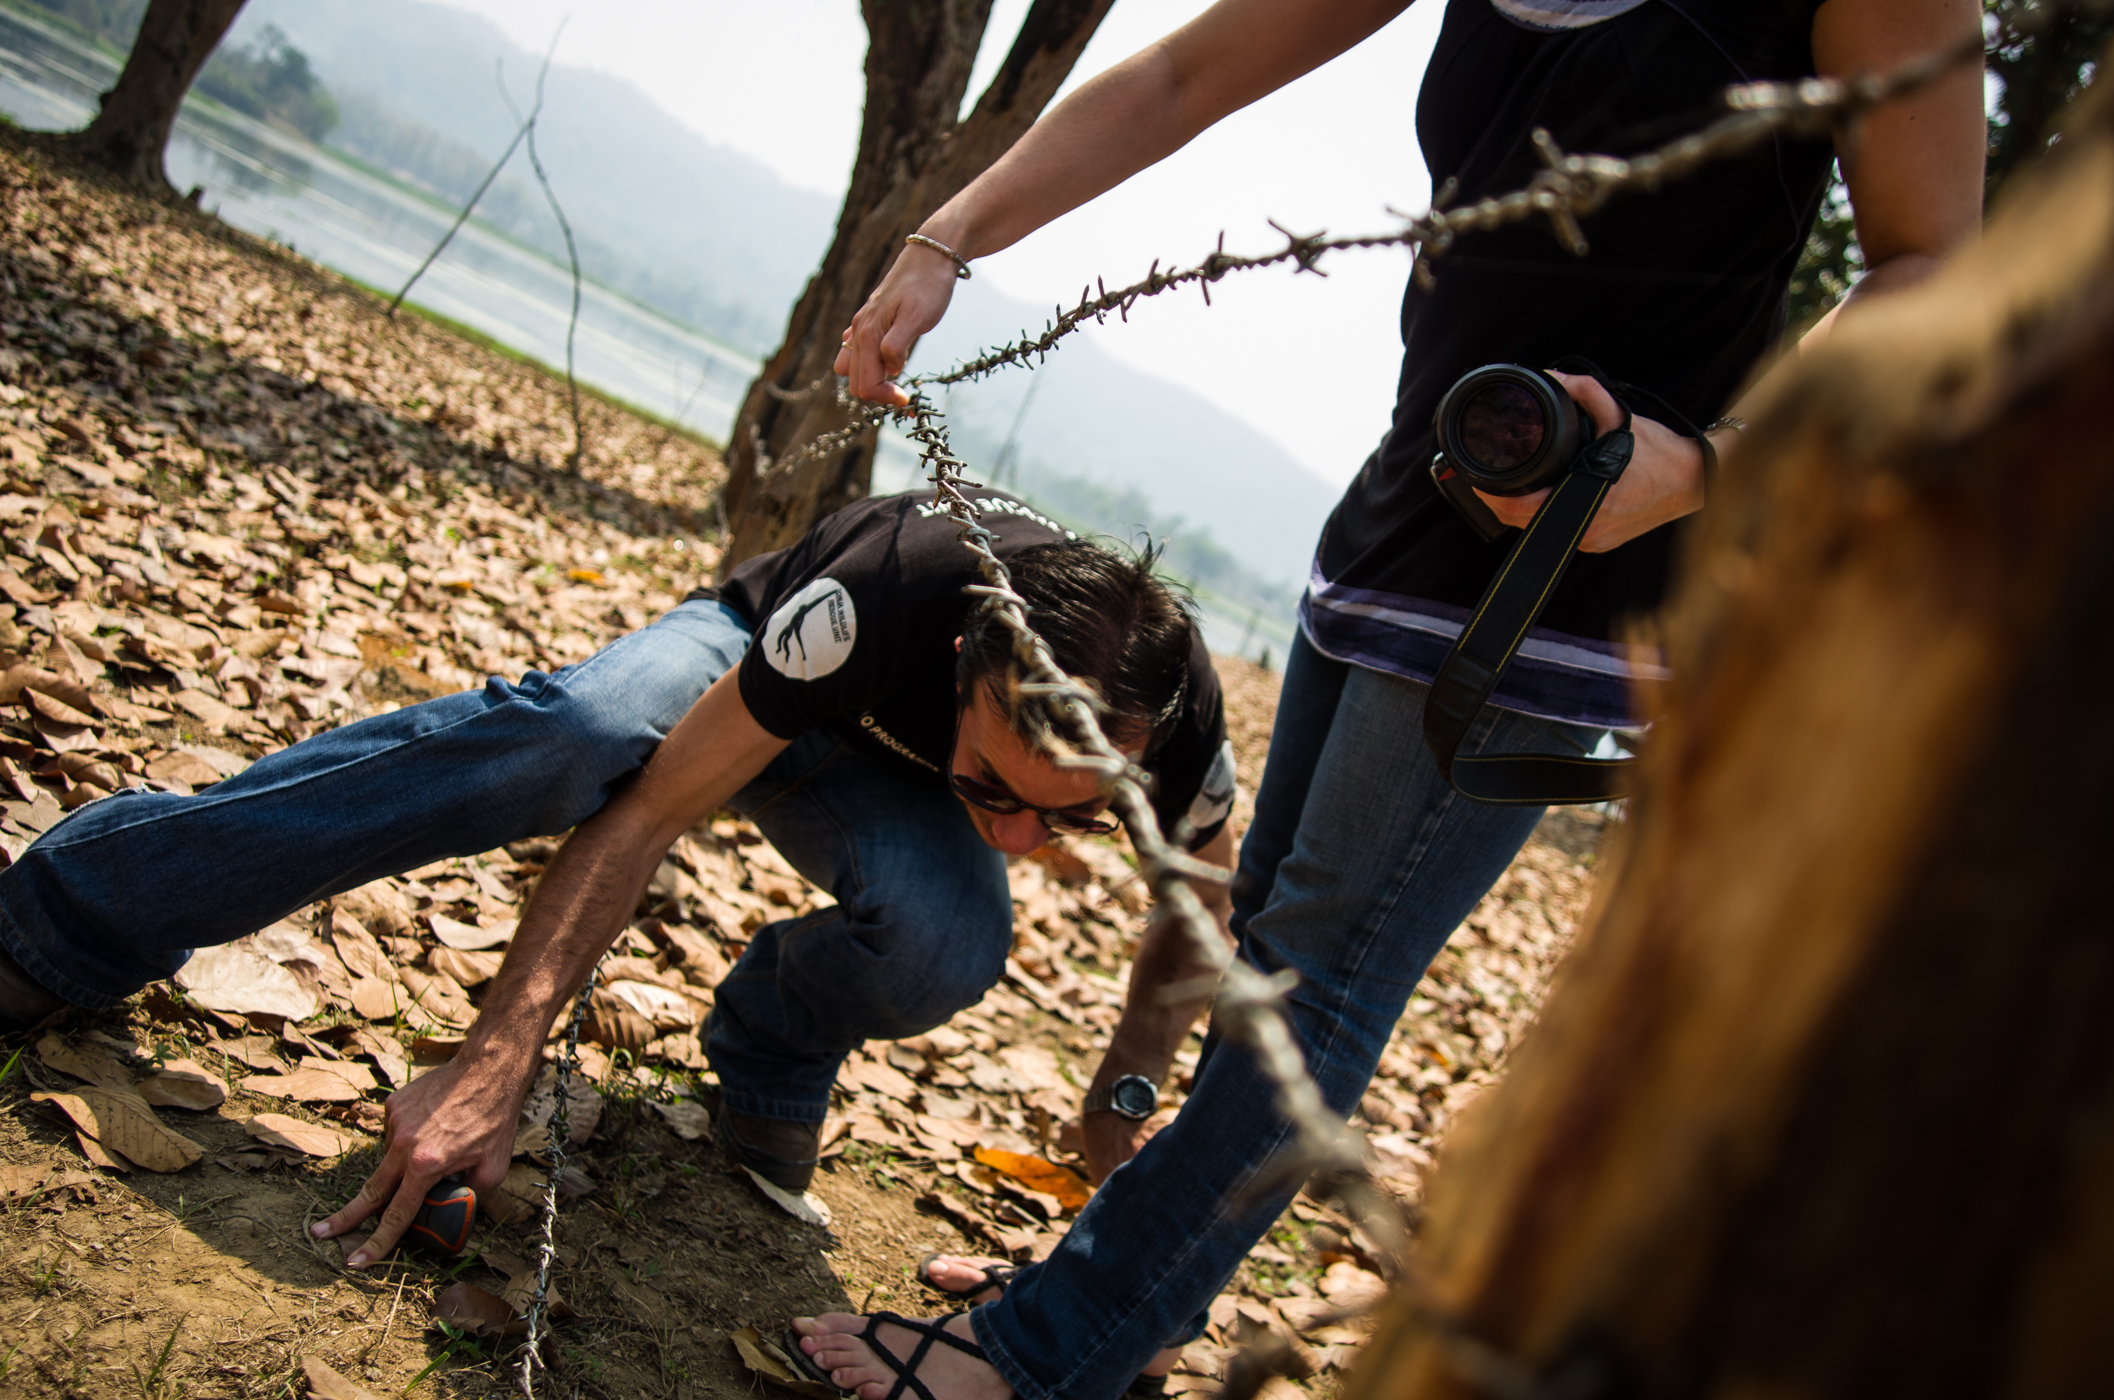 Mathilde lifts a barbwire fence for Florian while scouting new land in Assam.